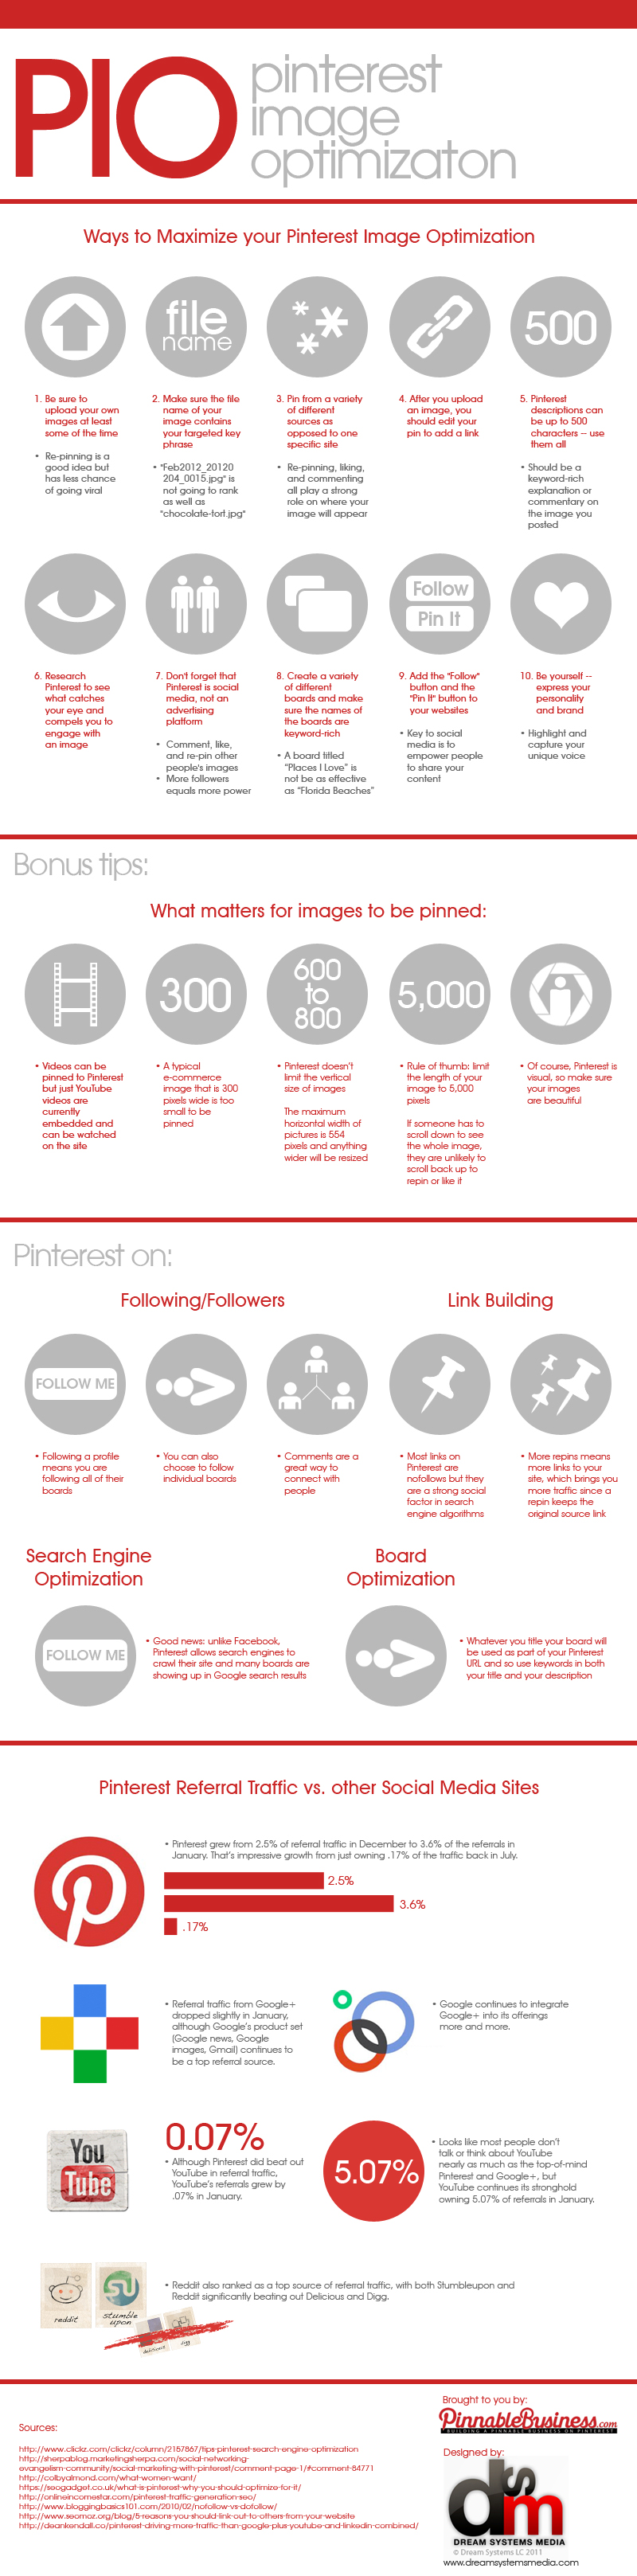 pinterest-image-optimization-guide